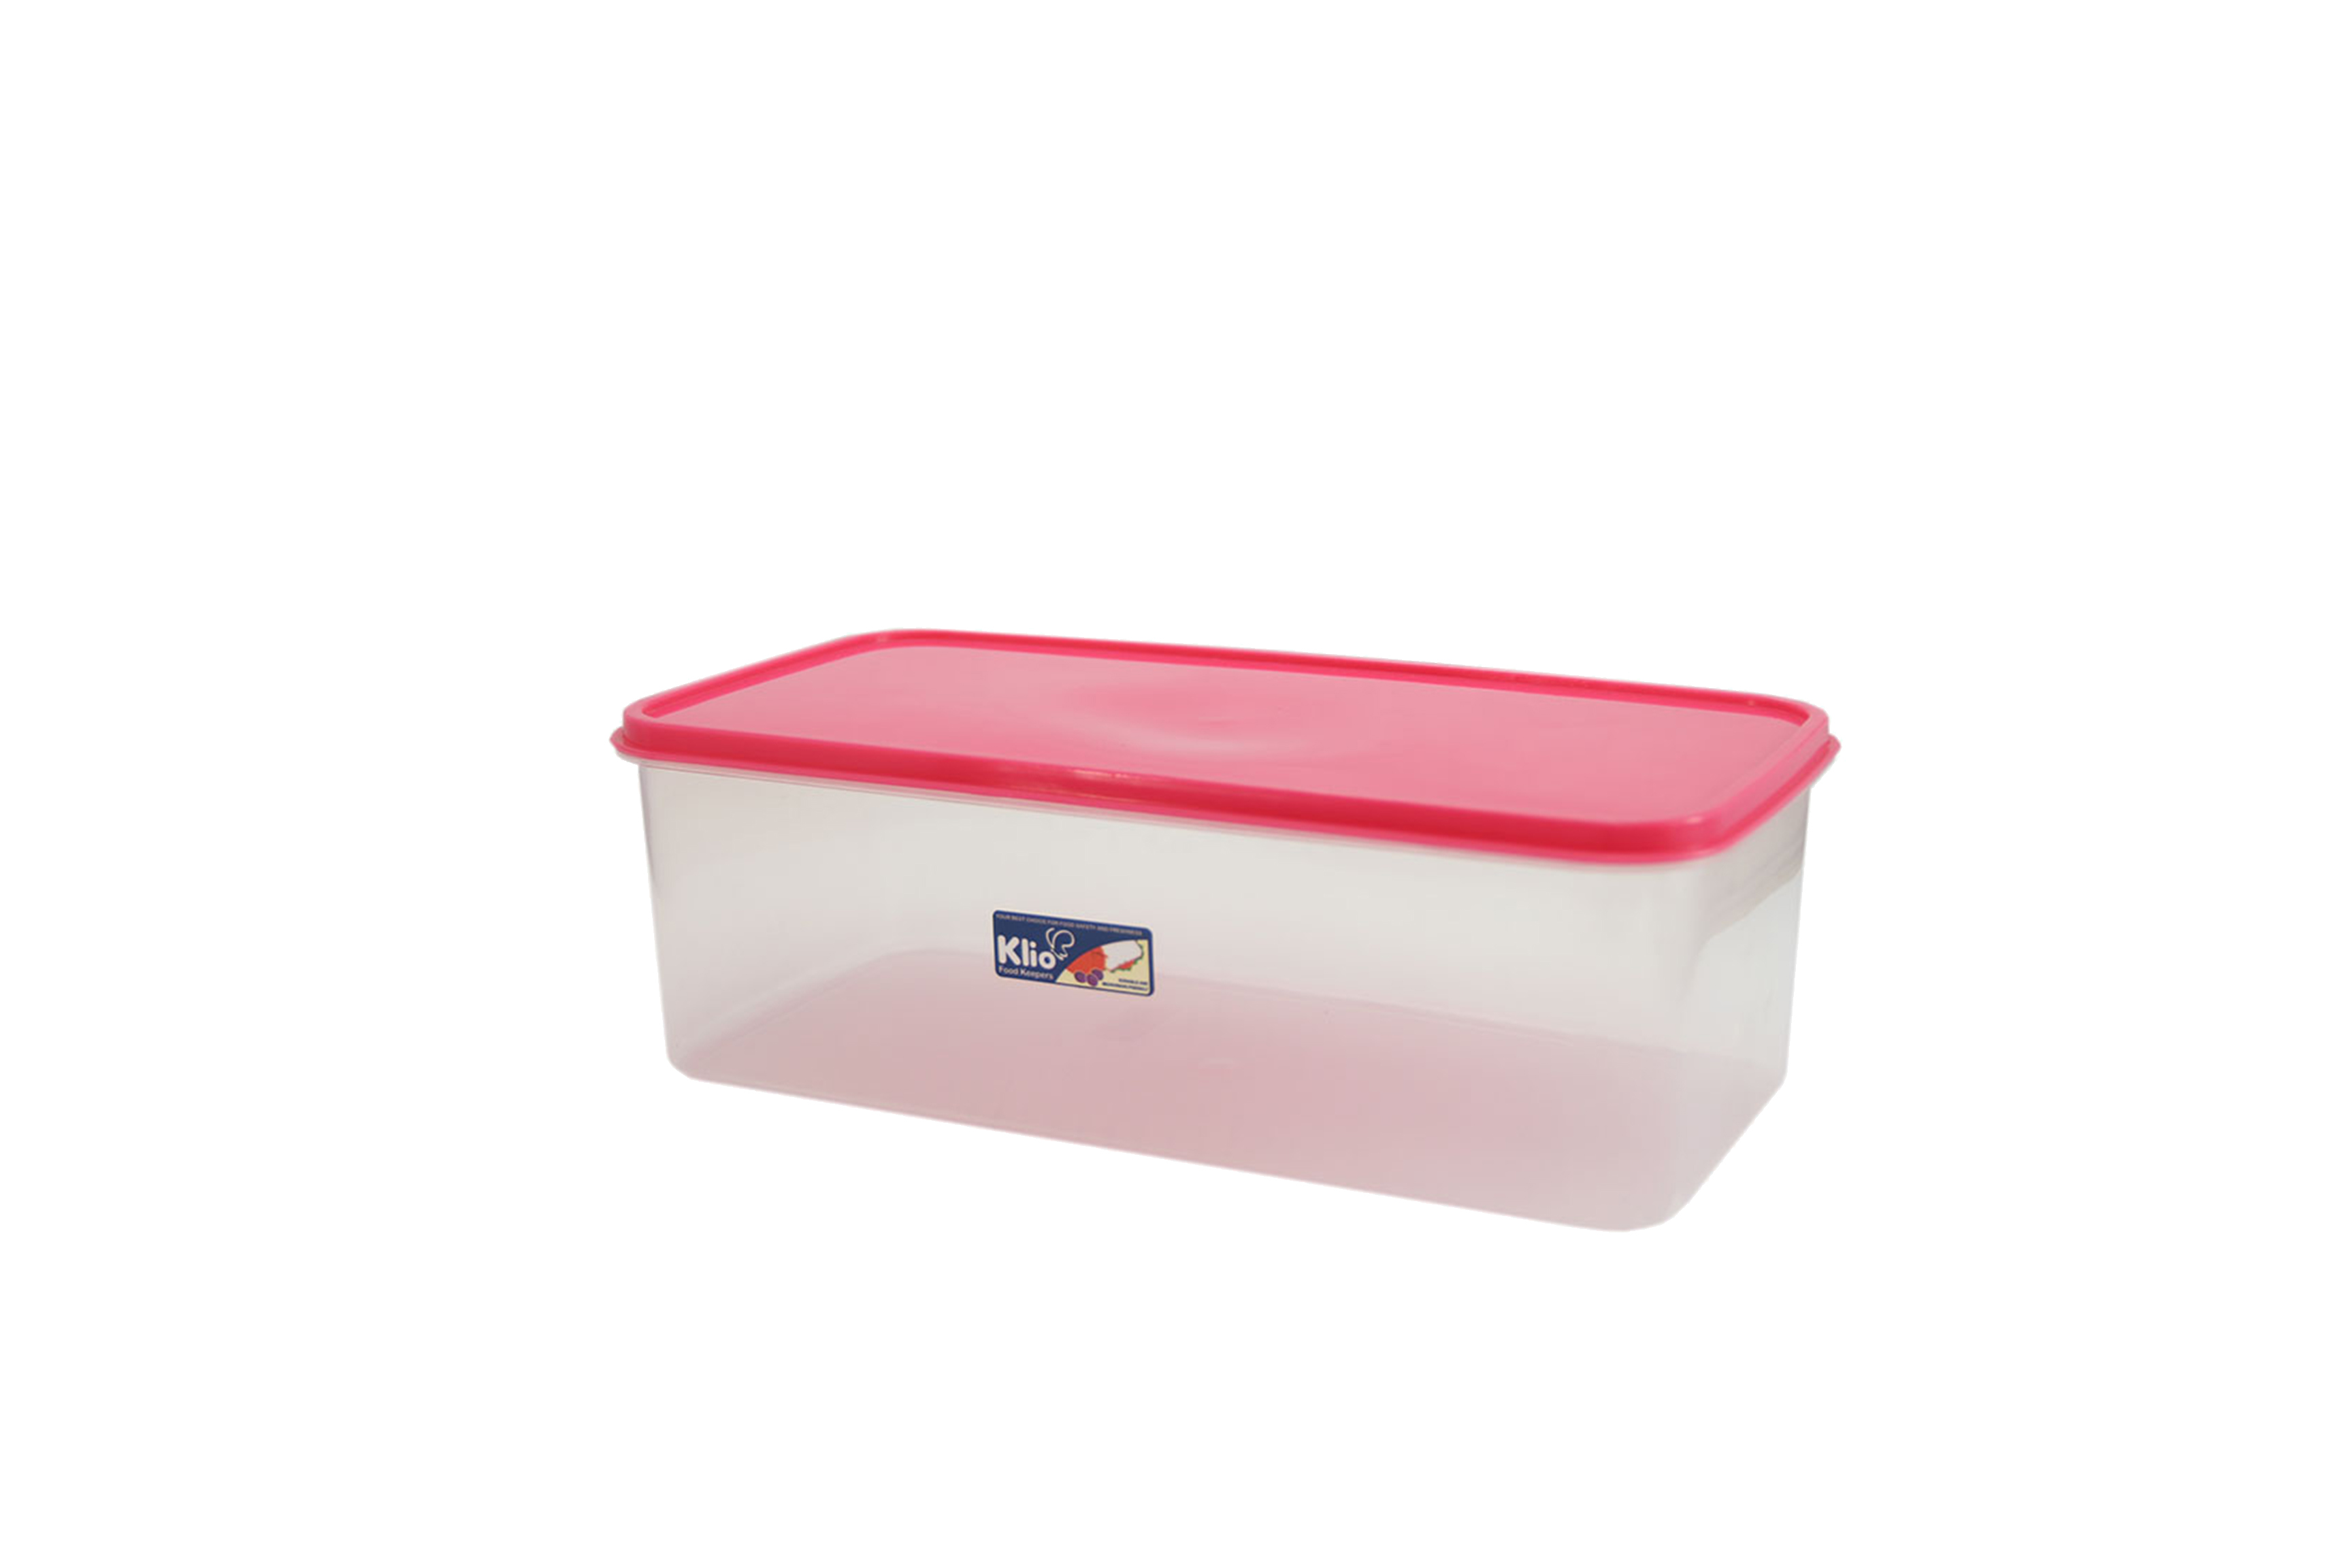 Bread Loaf Box Plastic Containers Food Packaging